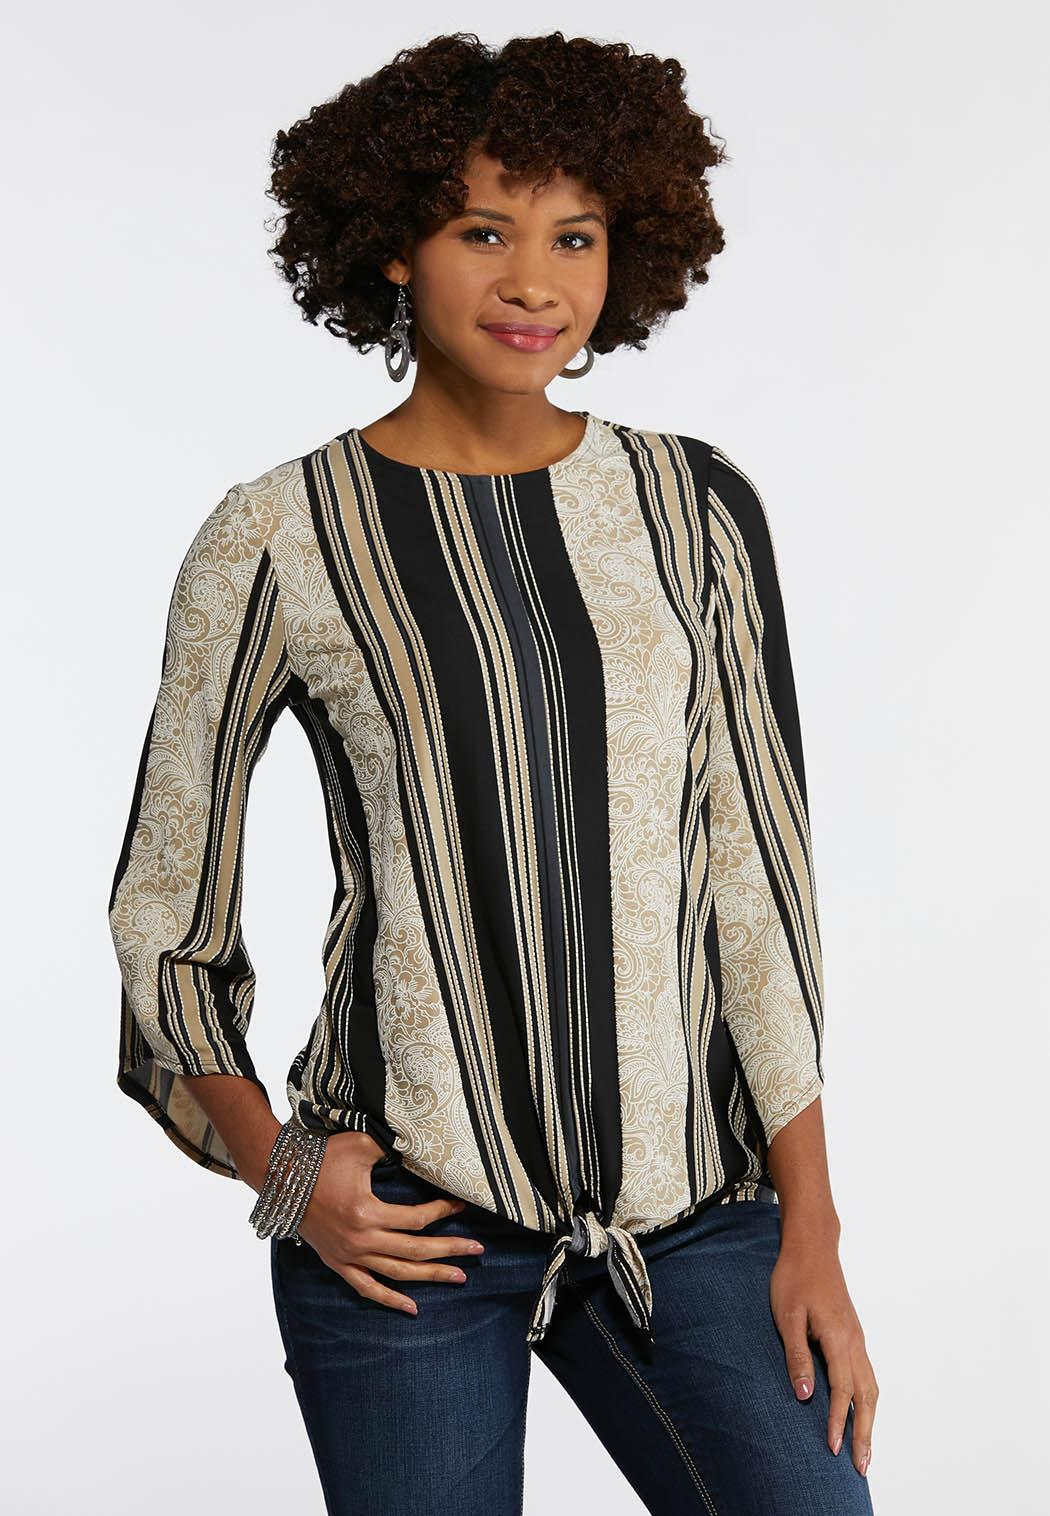 043240e3f4a30 Plus Size Textured Stripe Paisley Top Tees   Knit Tops Cato Fashions